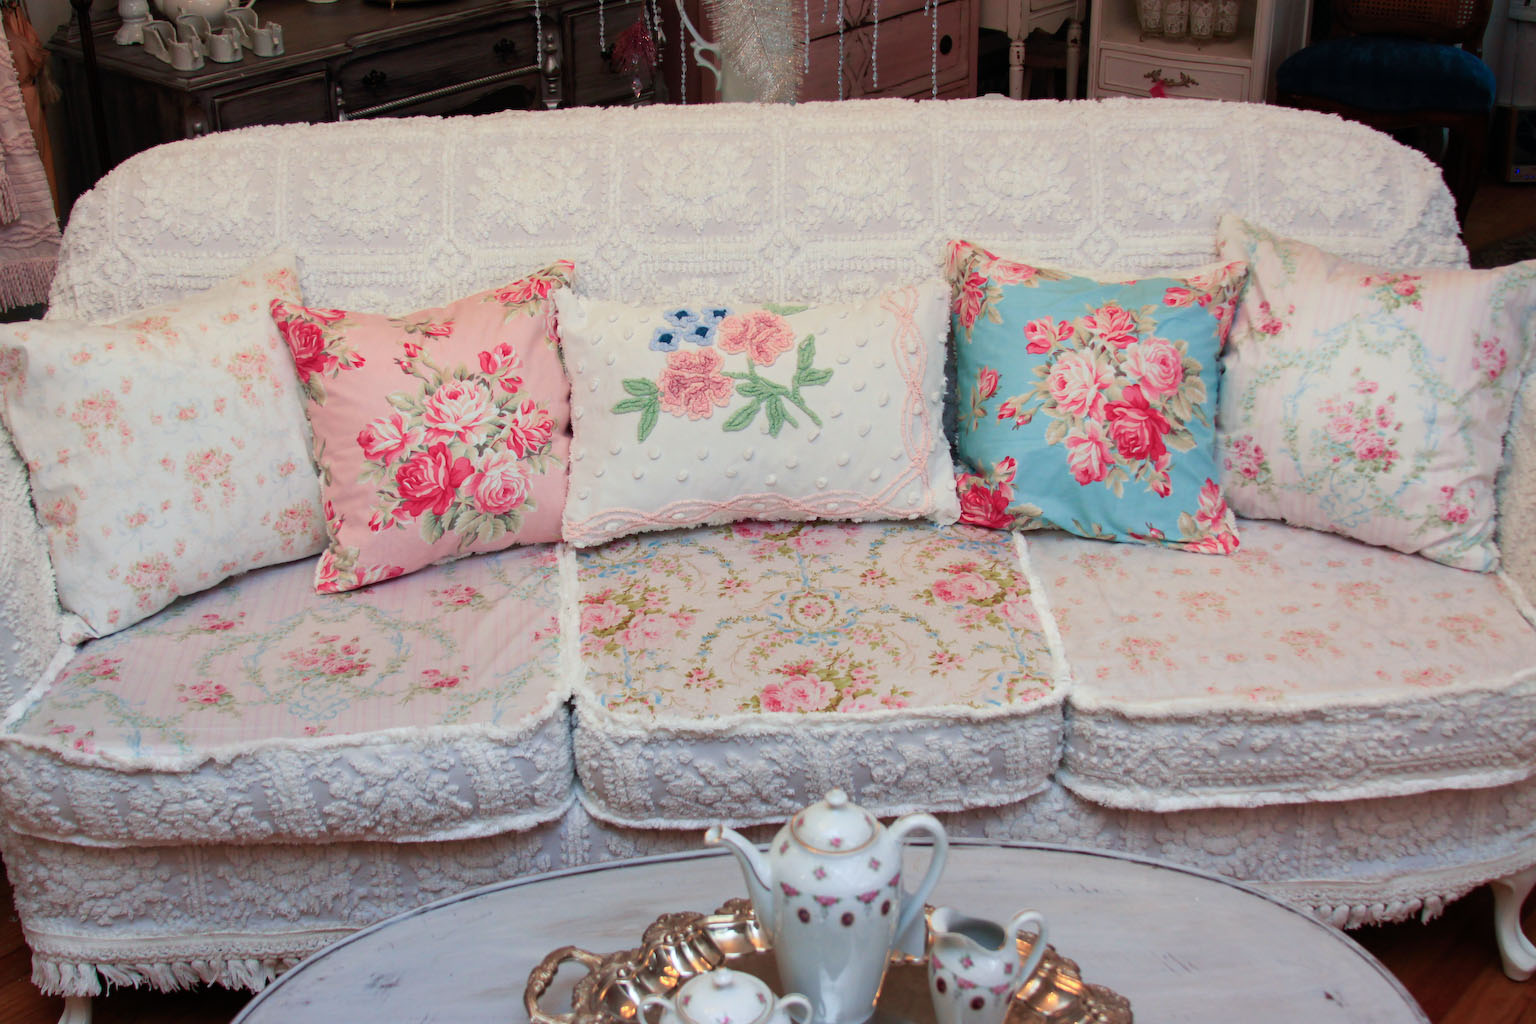 Rose Sofa Slipcover Selections Harrisburg Pa Vintage Chic Furniture Schenectady Ny Omg Antique